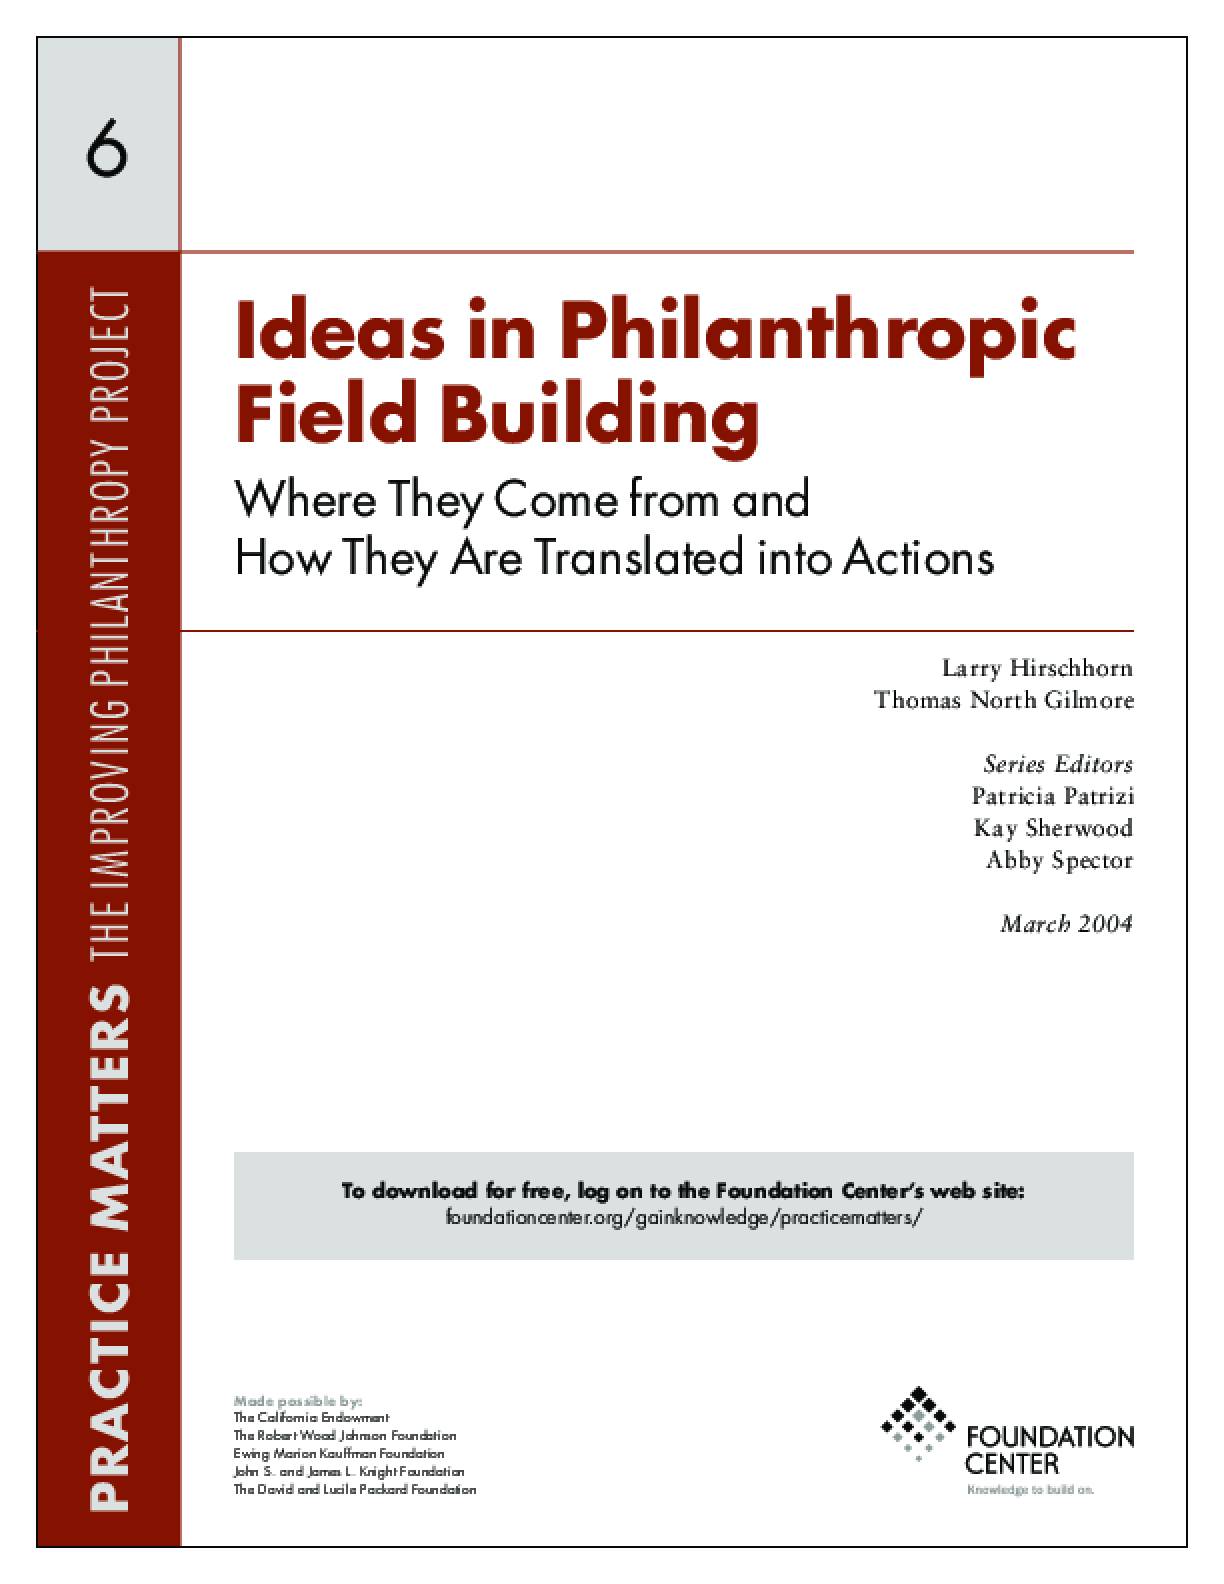 Ideas in Philanthropic Field Building: Where They Come from and How They Are Translated into Actions - Executive Summary